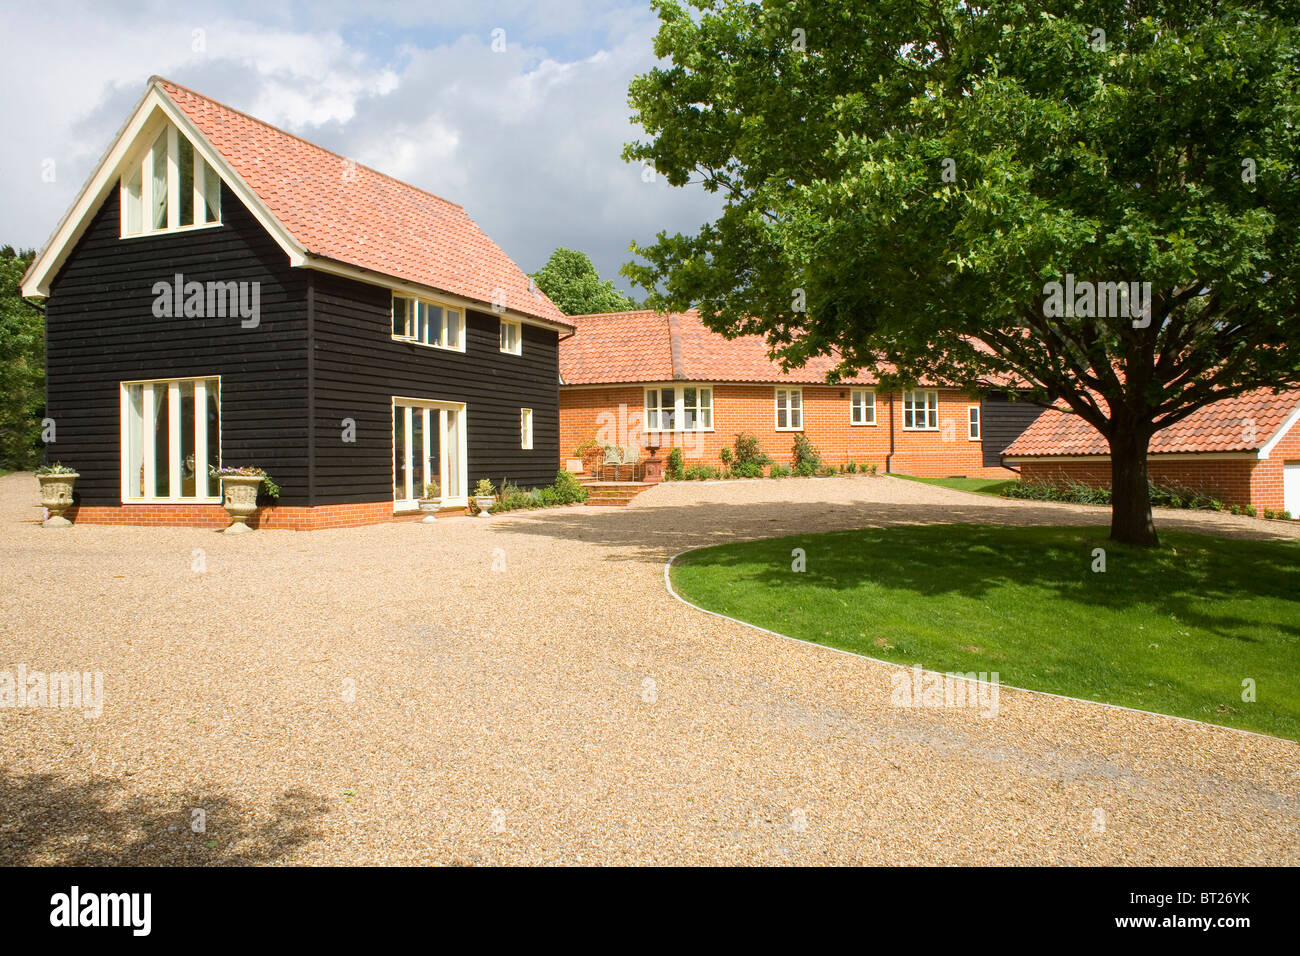 Barn Conversion Exterior Stockfotos & Barn Conversion Exterior ...